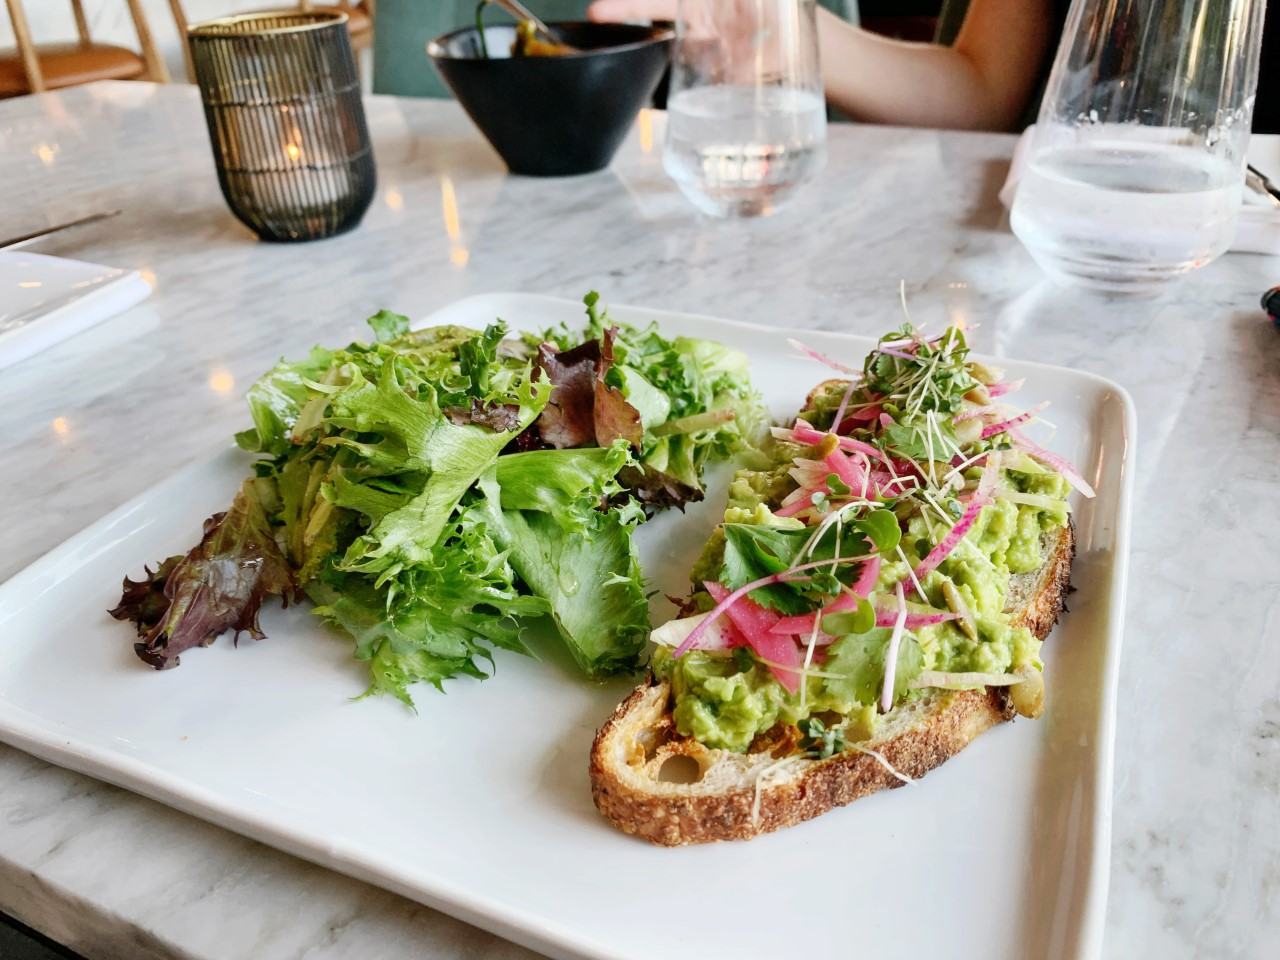 One of the items The Table at Crate serves is avocado tartines served with a side salad.